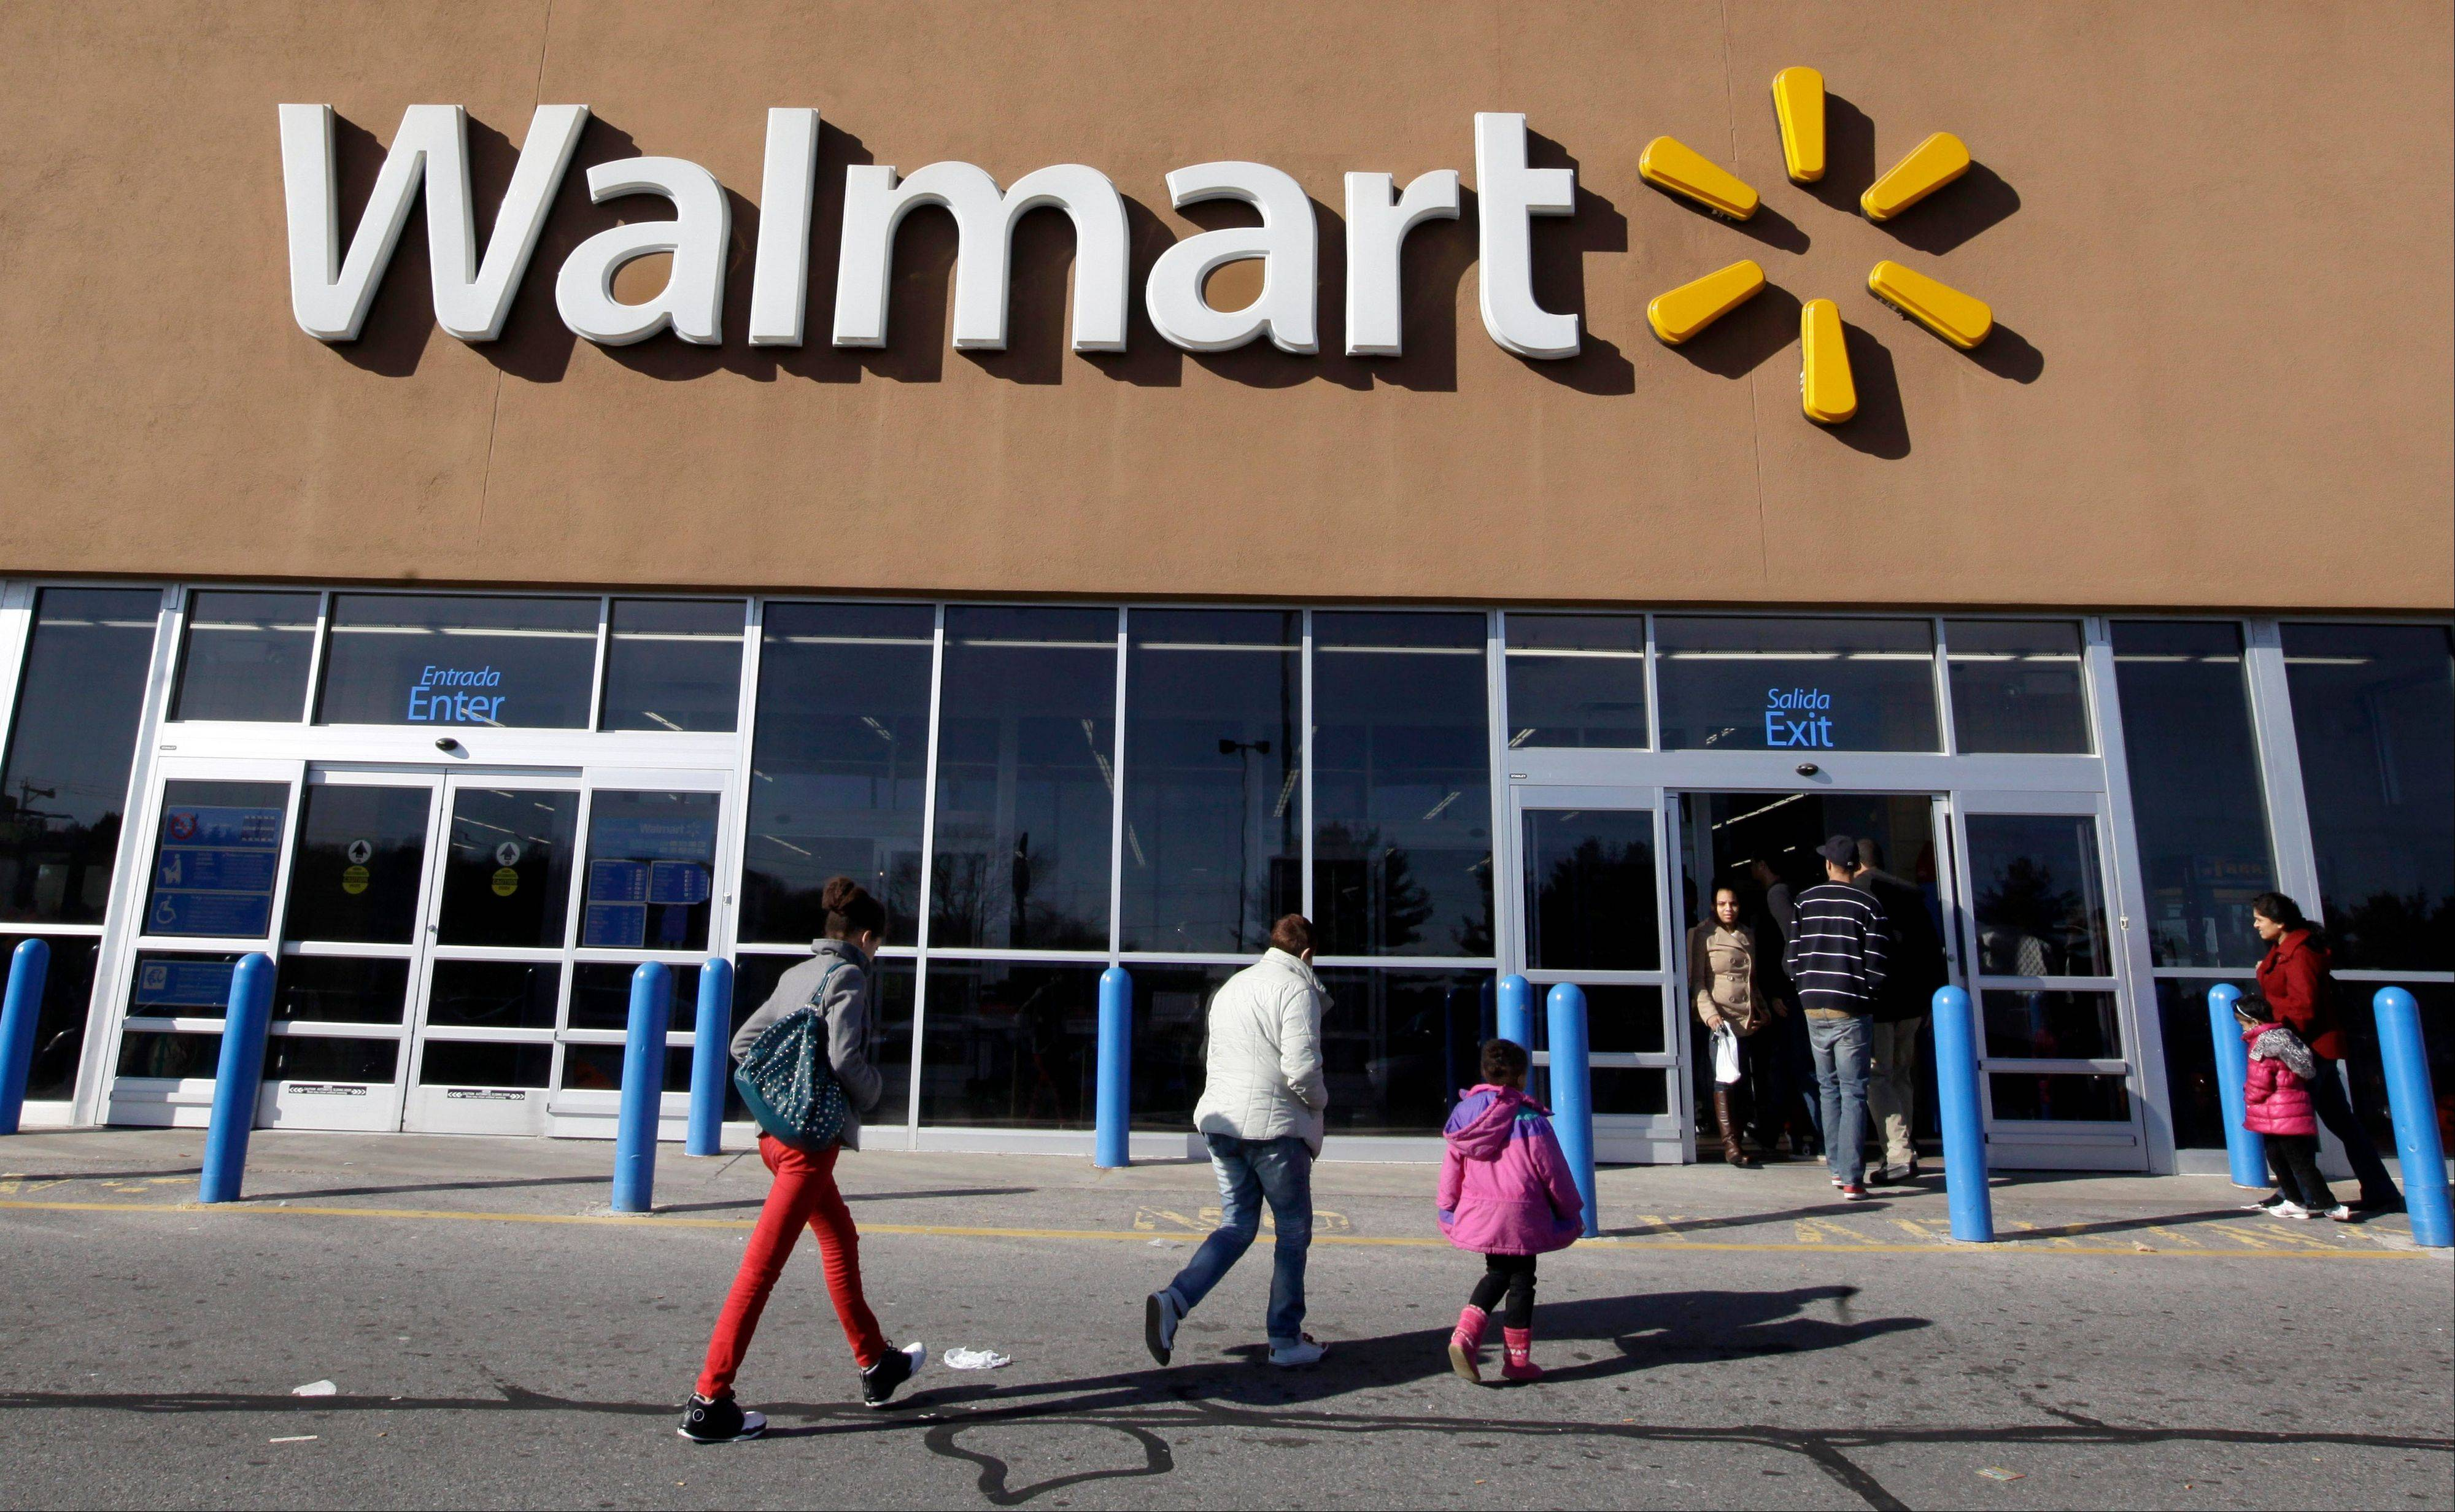 Associated Press/Feb. 20, 2012 Customers walk into and out of a Wal-Mart store in Methuen, Mass. Wal-Mart Stores Inc. reported a 5.7 percent increase in second-quarter net income and raised its outlook for the full year.